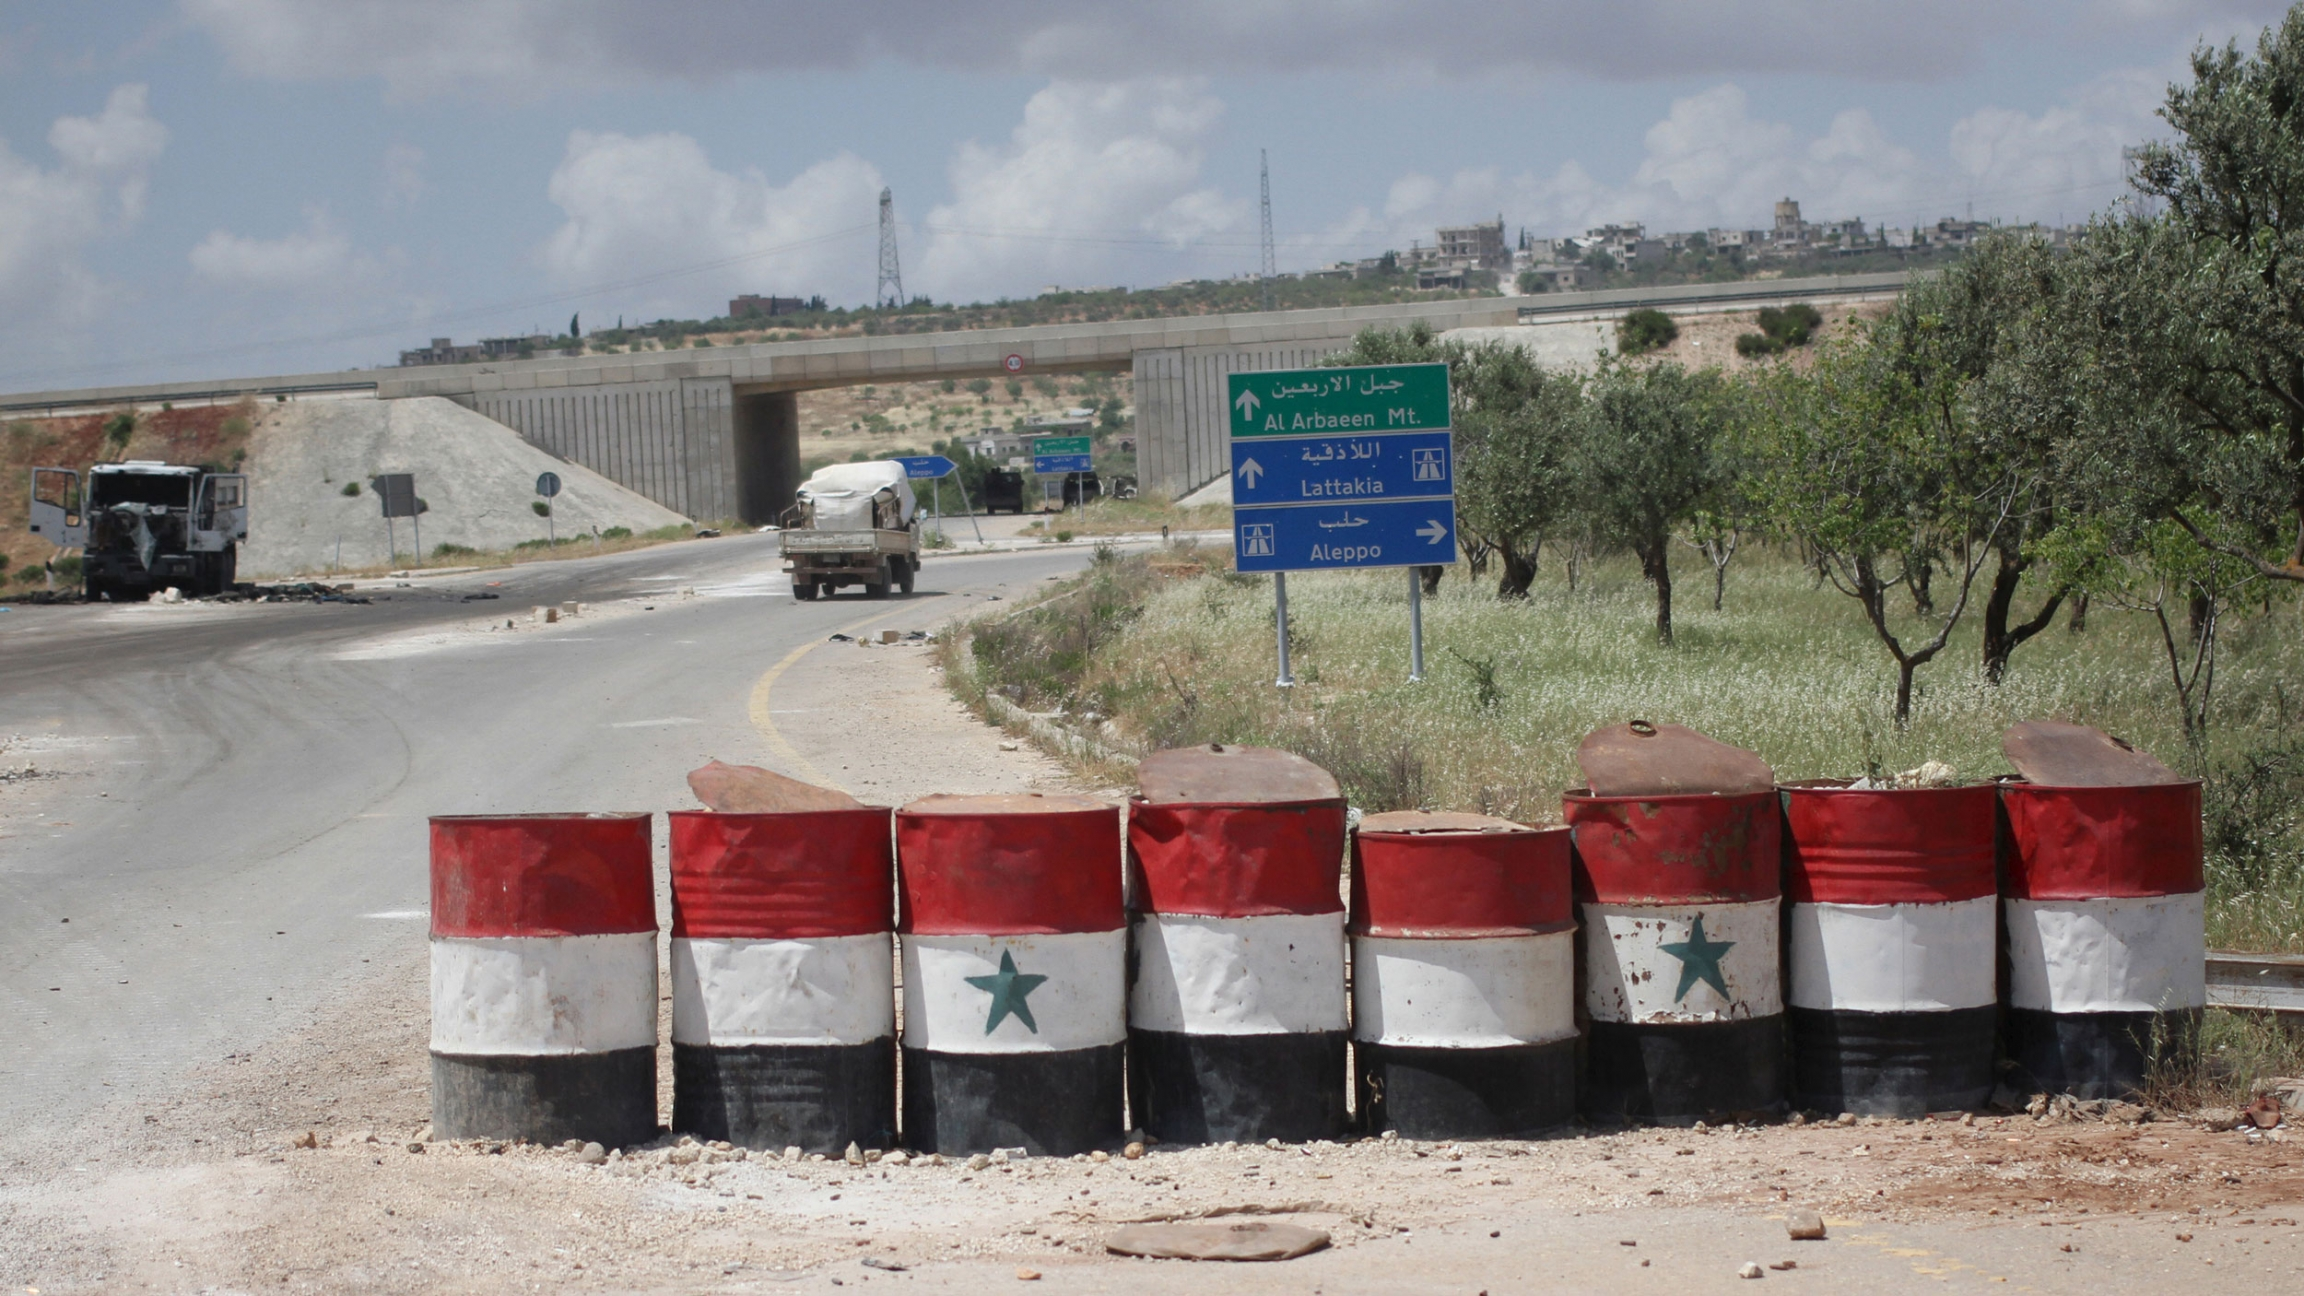 A road is shown with a row of large barrels with the colors of the Syrian flag painted on them.